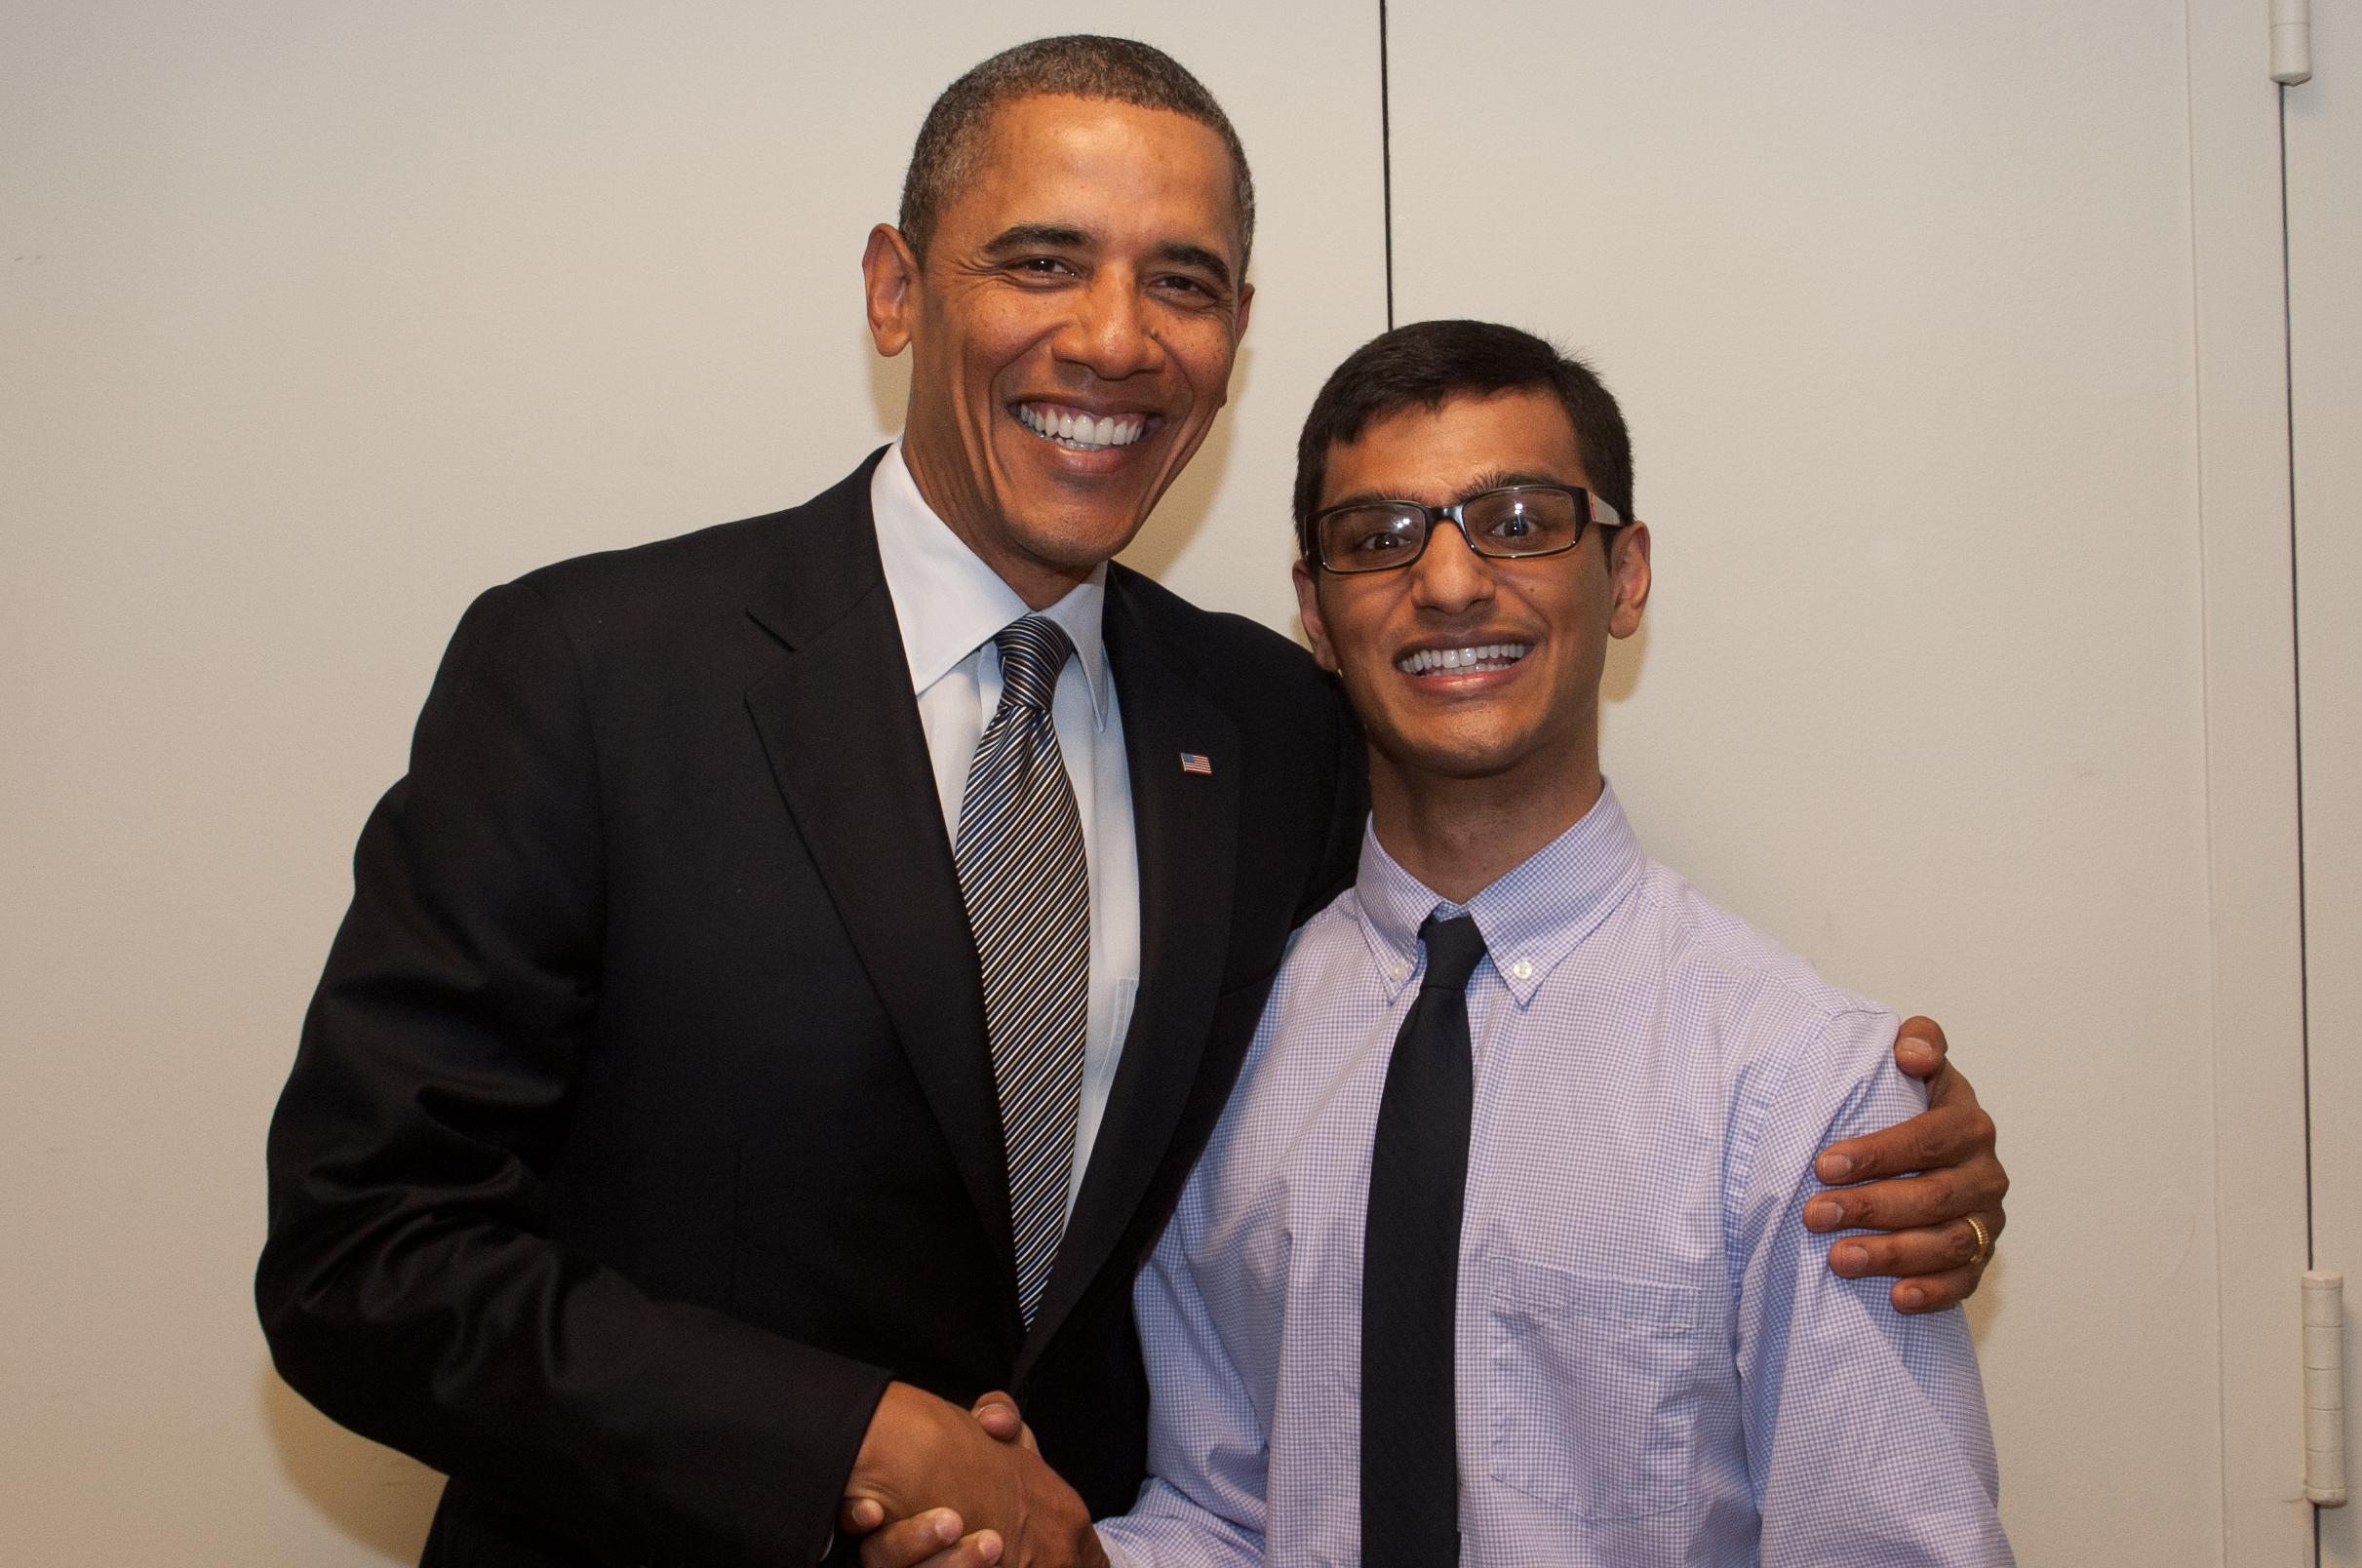 Samarth meets Barack Obama